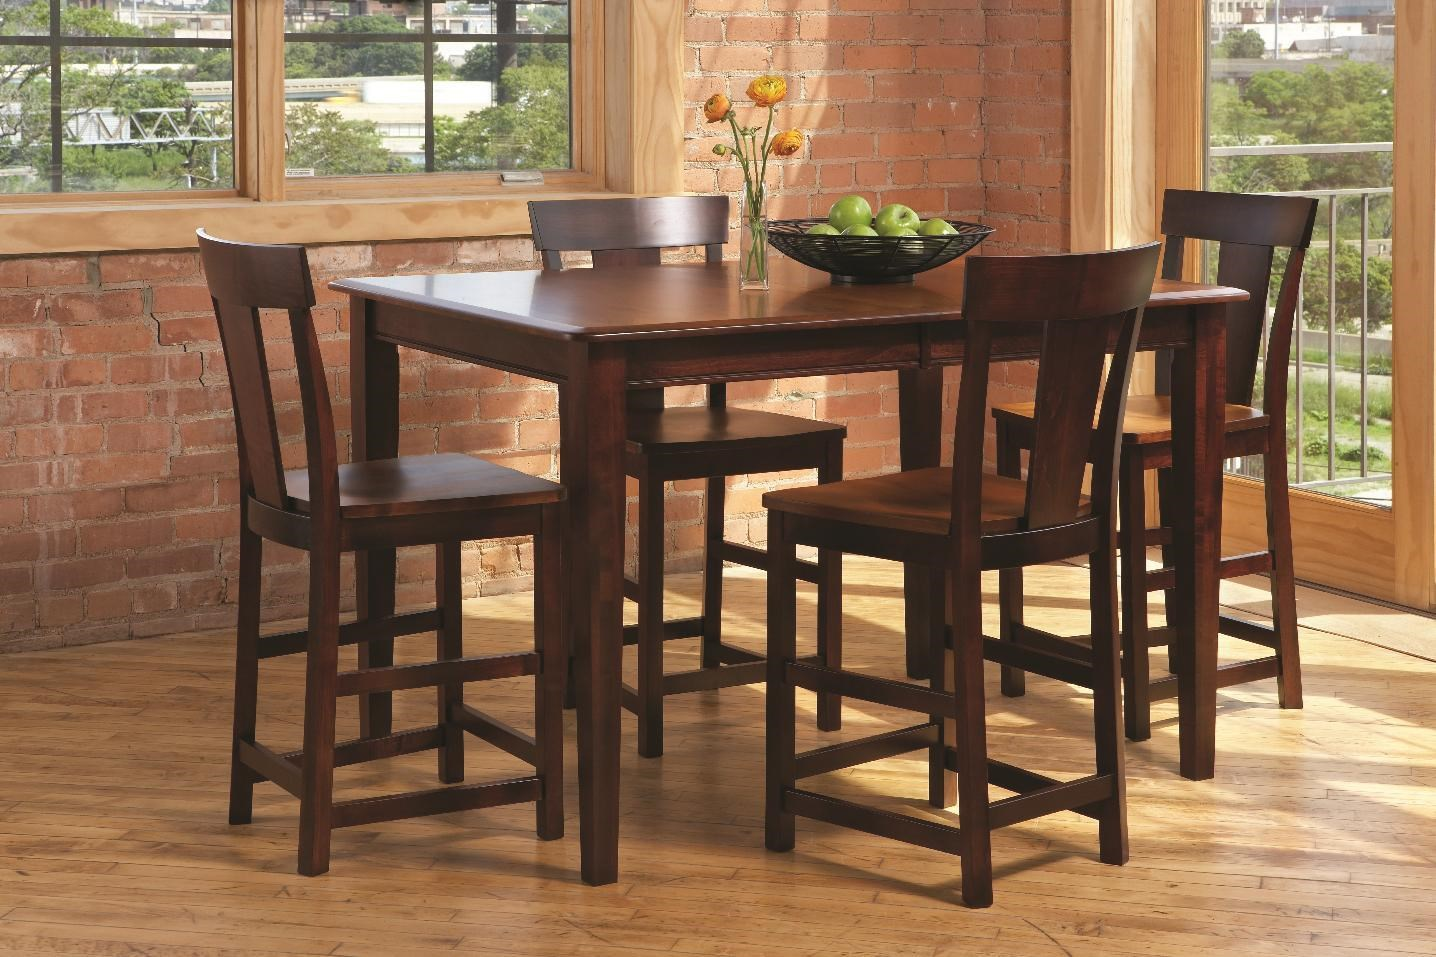 L.J. Gascho Furniture Anniversary II Anniversary 5-Piece Solid Wood Dining Set - Item Number: 310841532